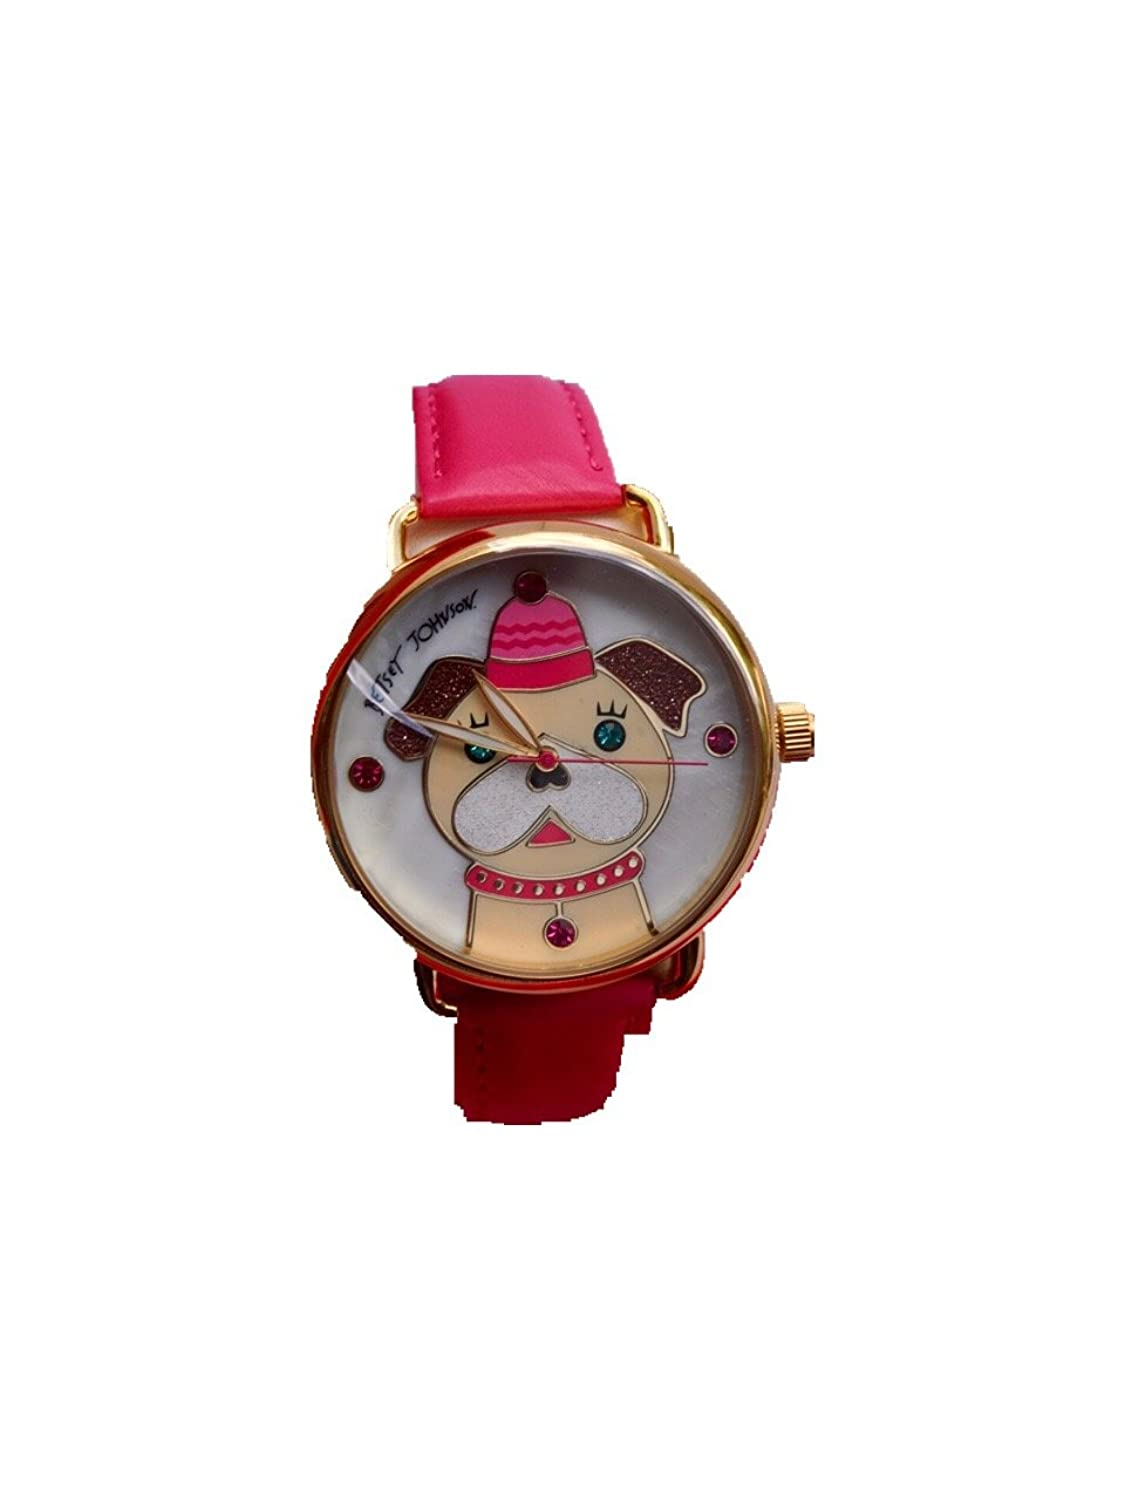 dog jewelry htm sets themed watches g accessories gifts and s lover